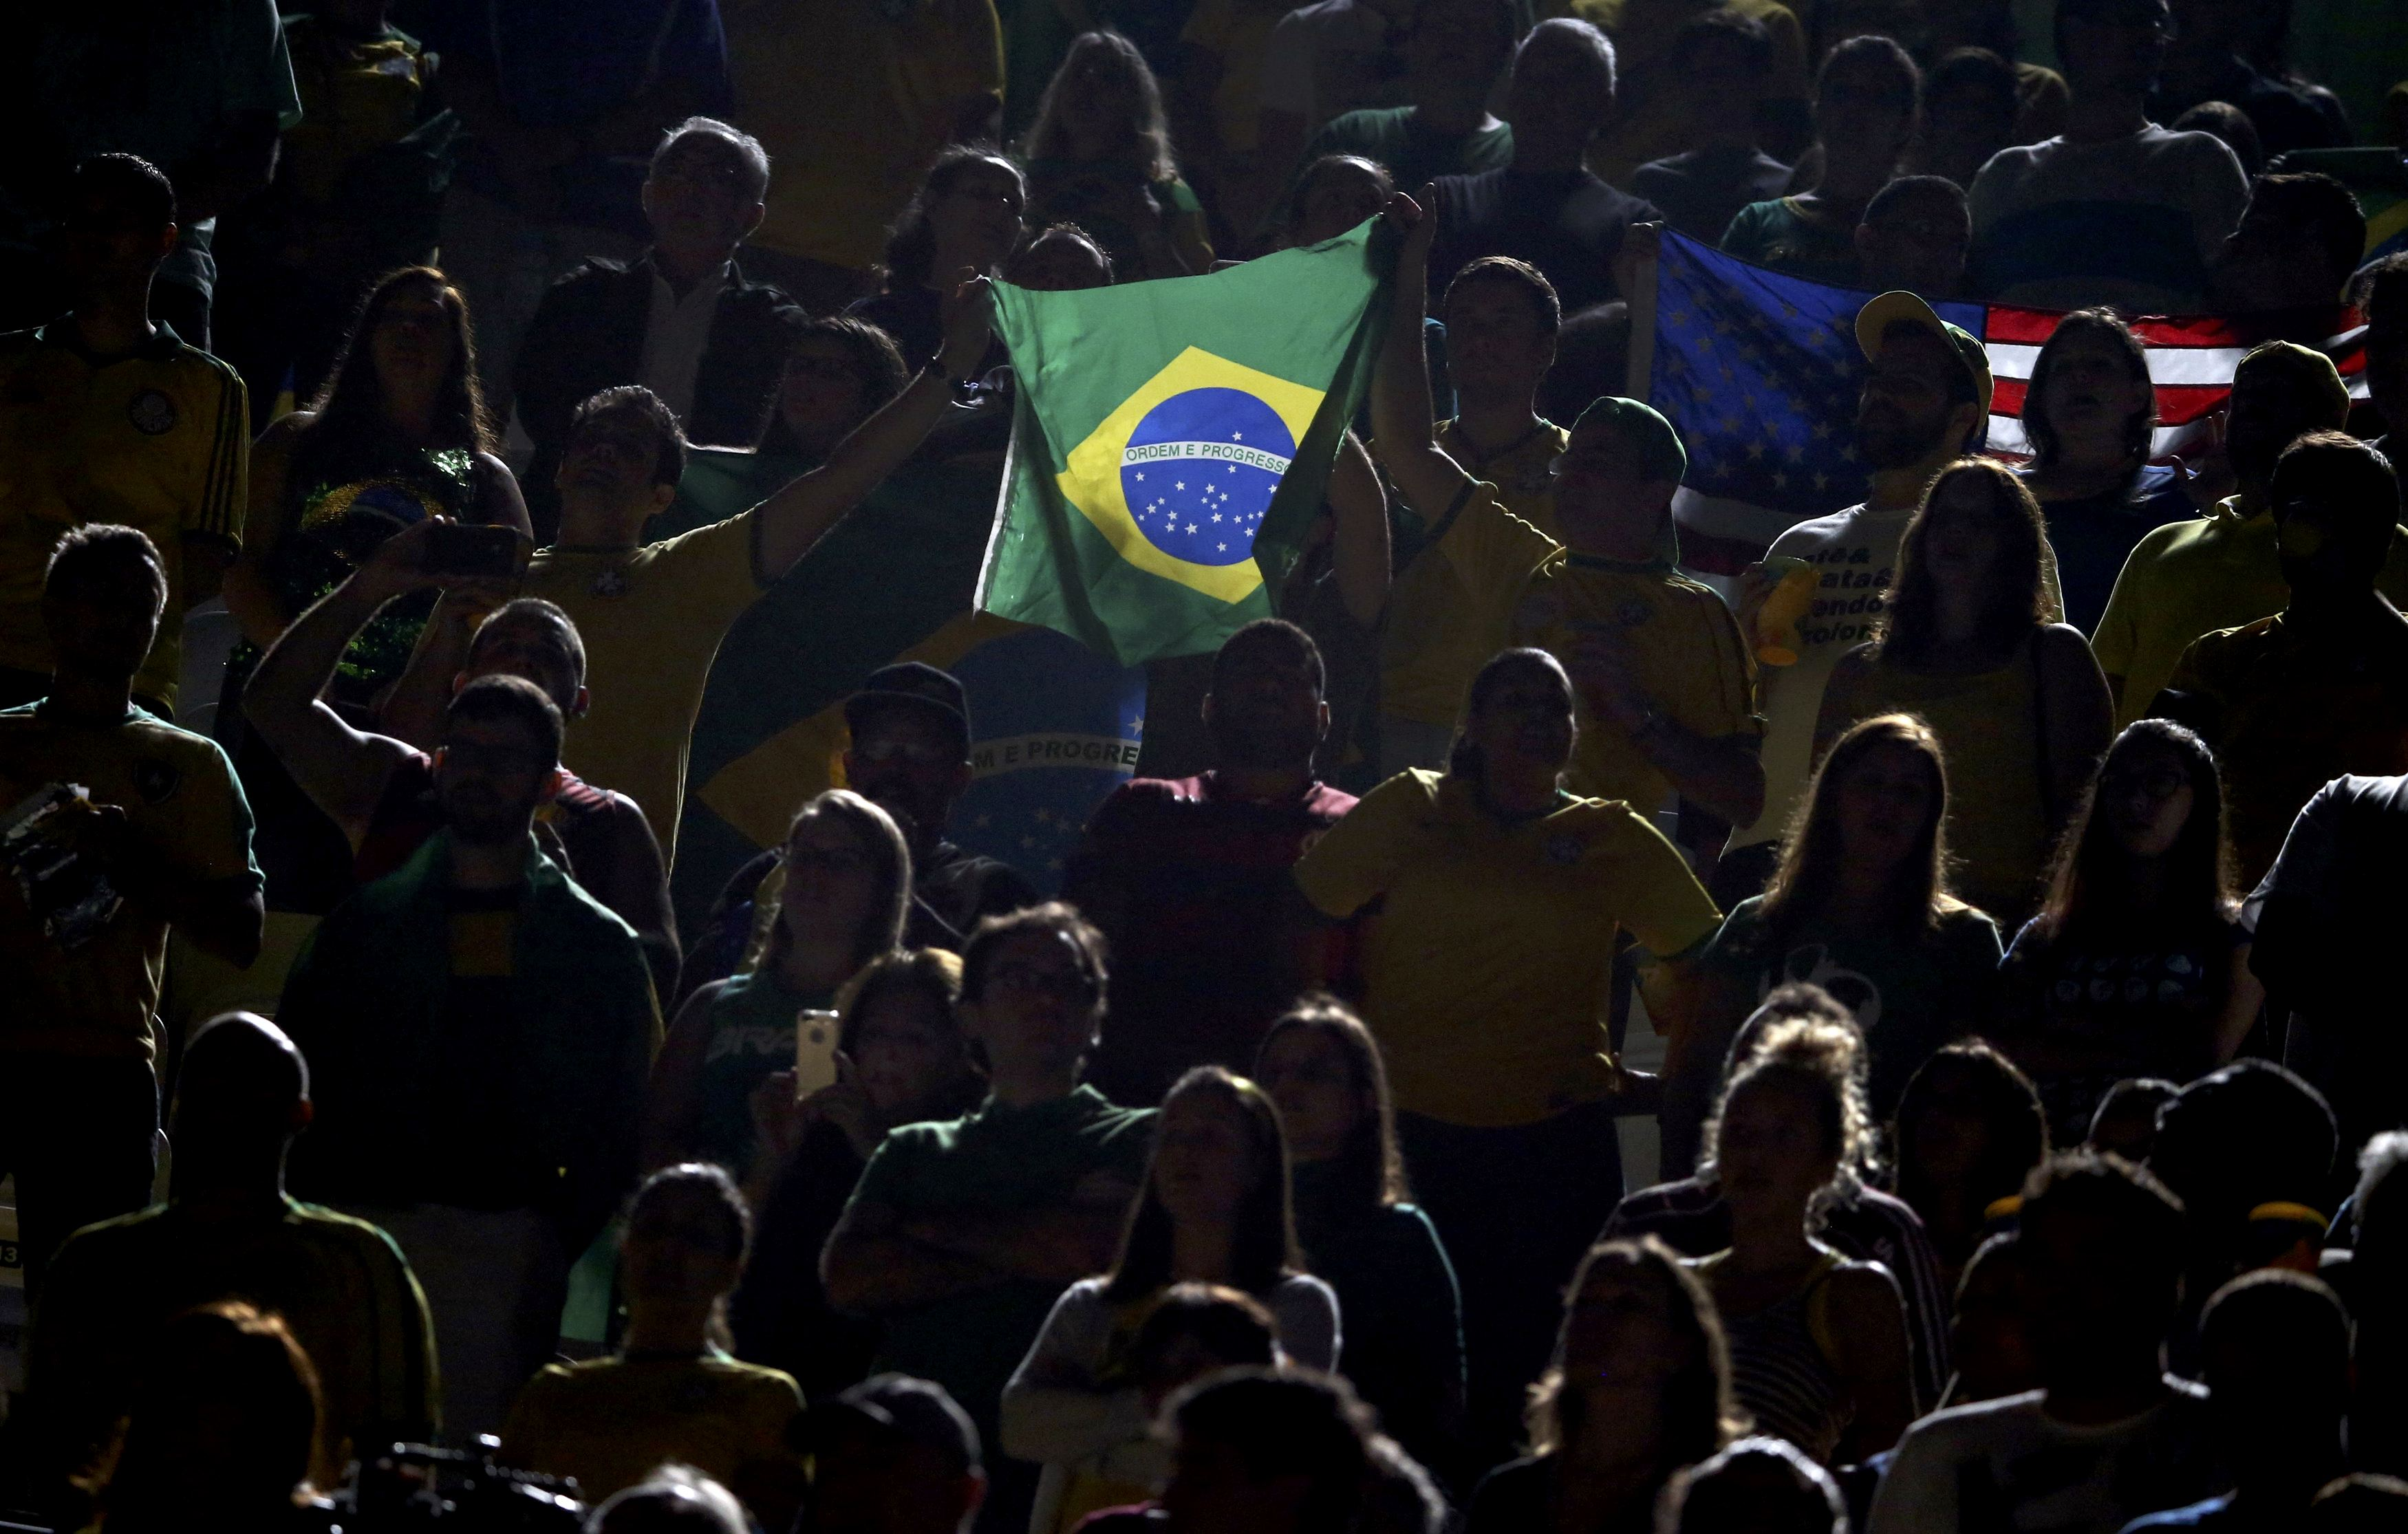 2016 Rio Olympics - Beach Volleyball - Women's Bronze Medal Match - Brazil v USA - Beach Volleyball Arena - Rio de Janeiro, Brazil - 17/08/2016. Brazilian fans hold their national flag. REUTERS/Tony Gentile FOR EDITORIAL USE ONLY. NOT FOR SALE FOR MARKETING OR ADVERTISING CAMPAIGNS.